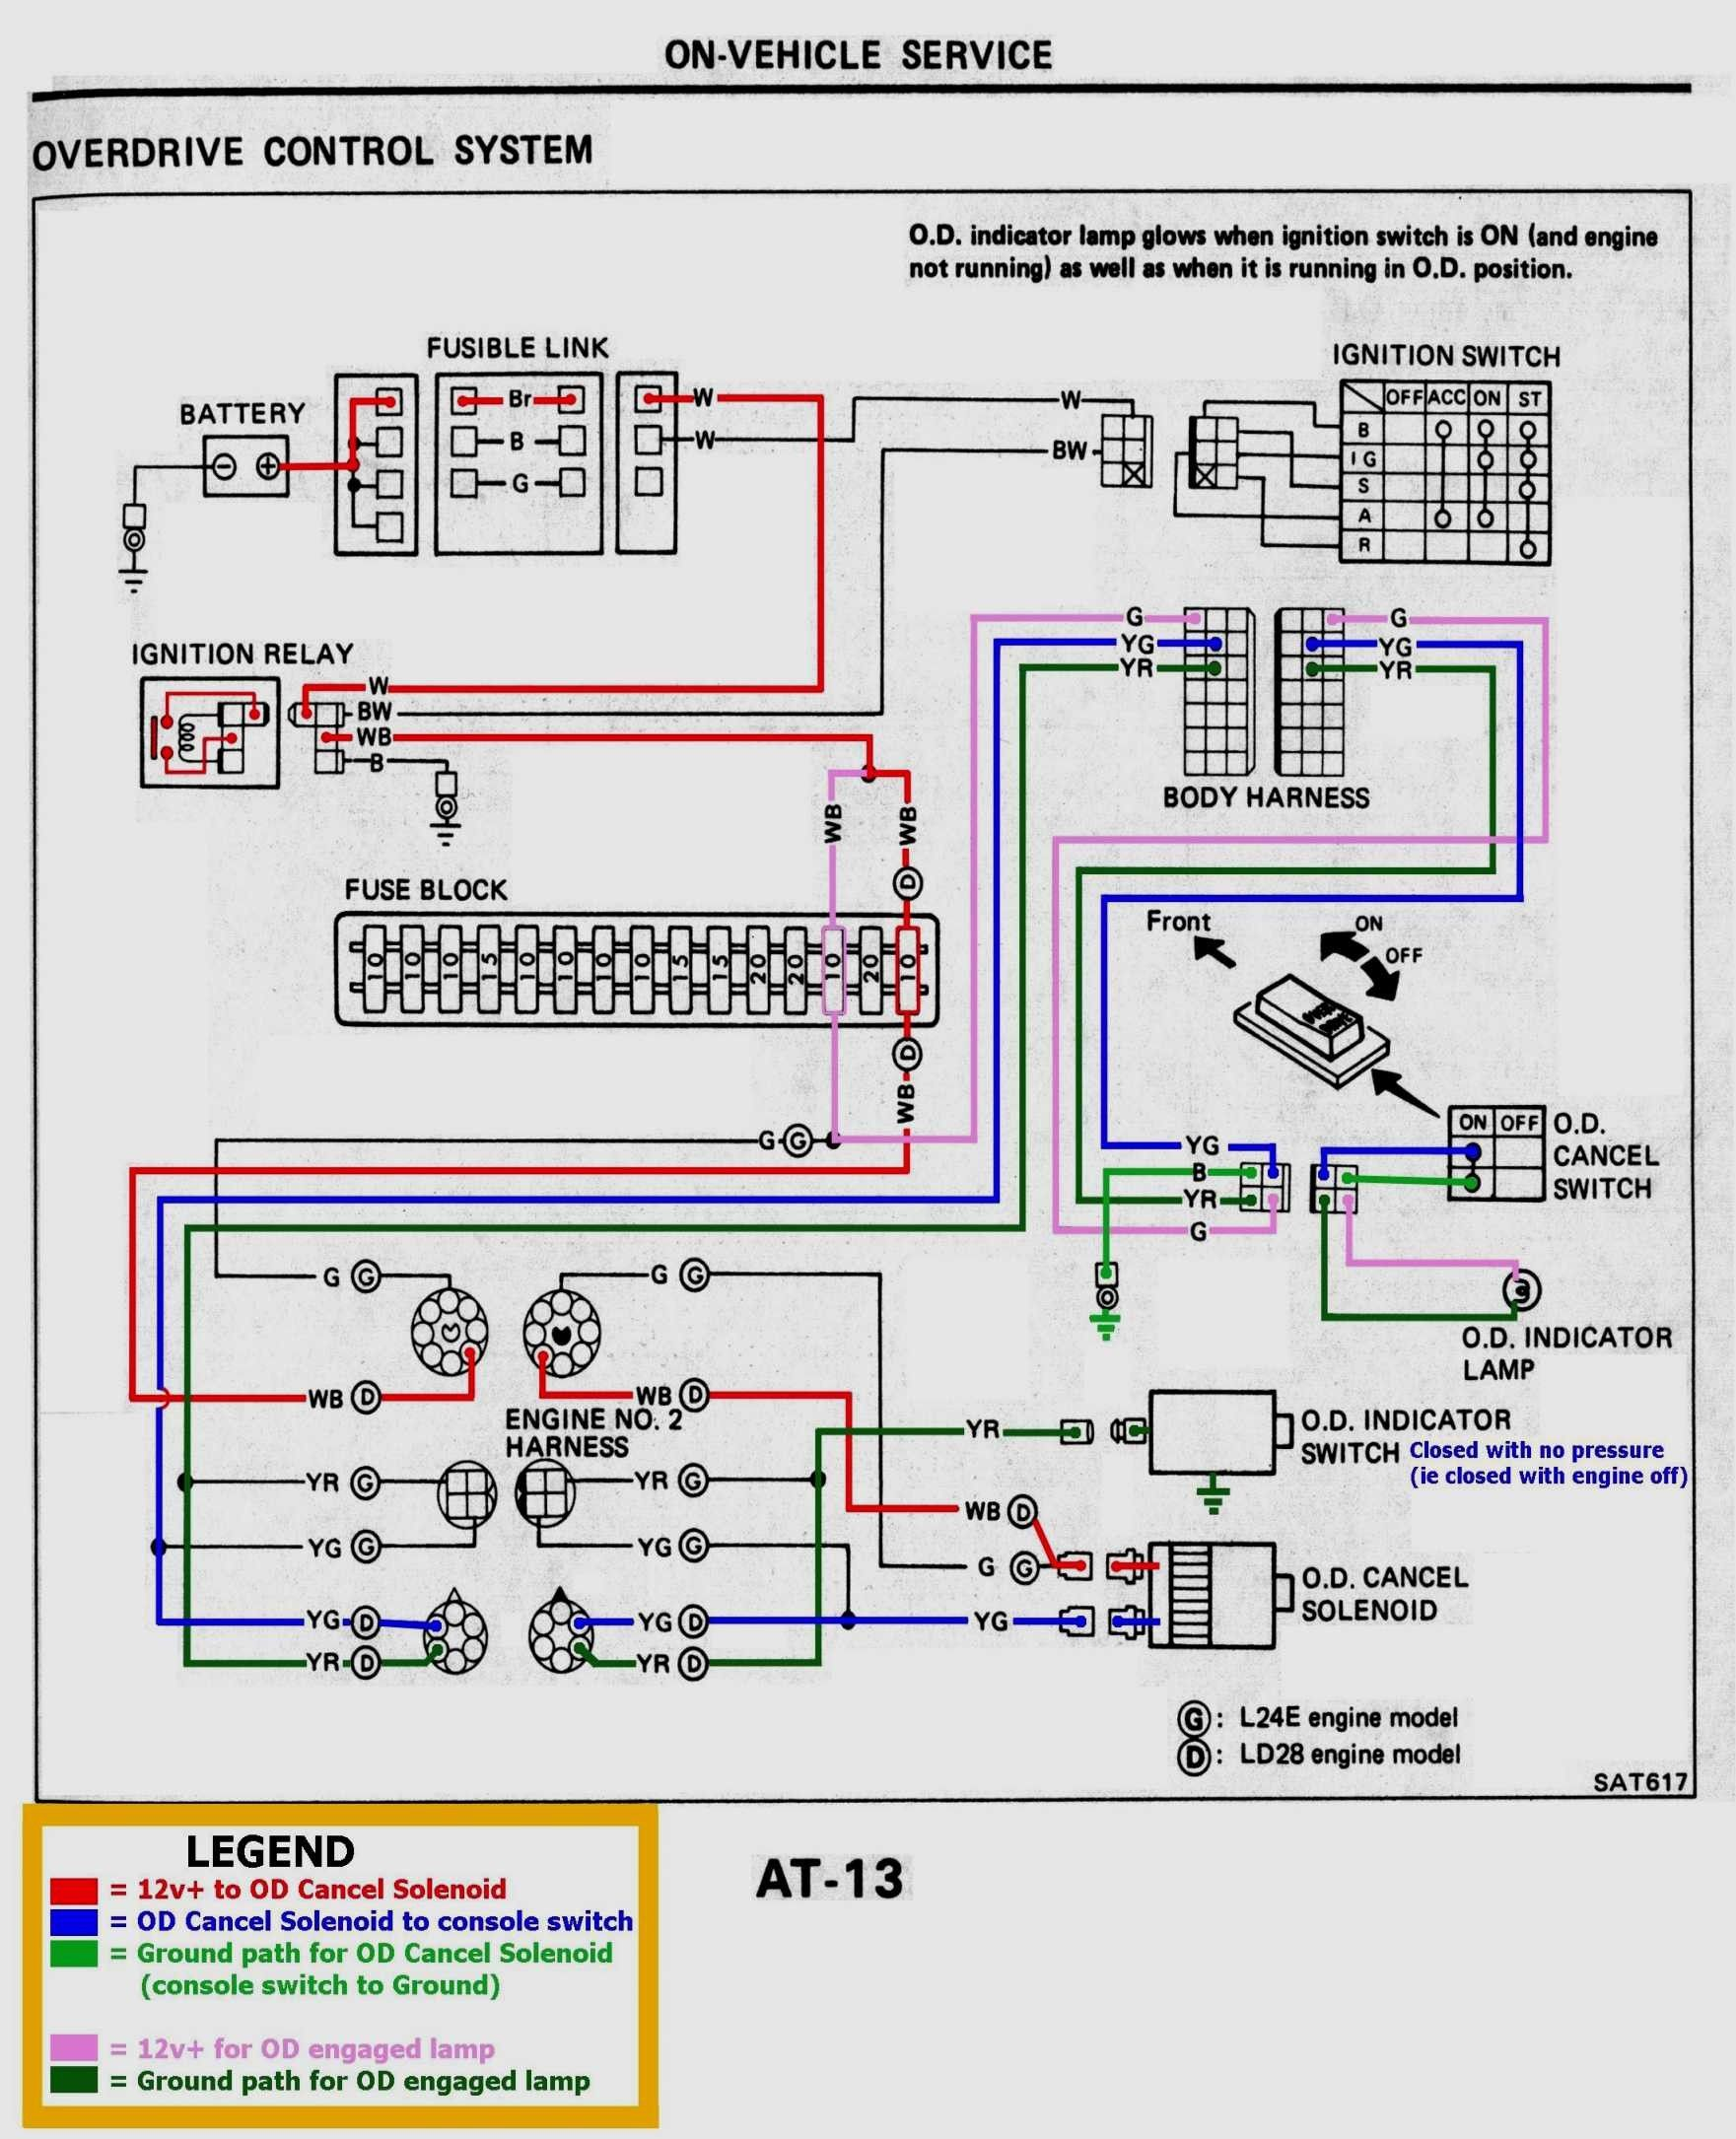 Diagram Diagramtemplate Diagramsample Electrical Wiring Diagram Trailer Wiring Diagram House Wiring